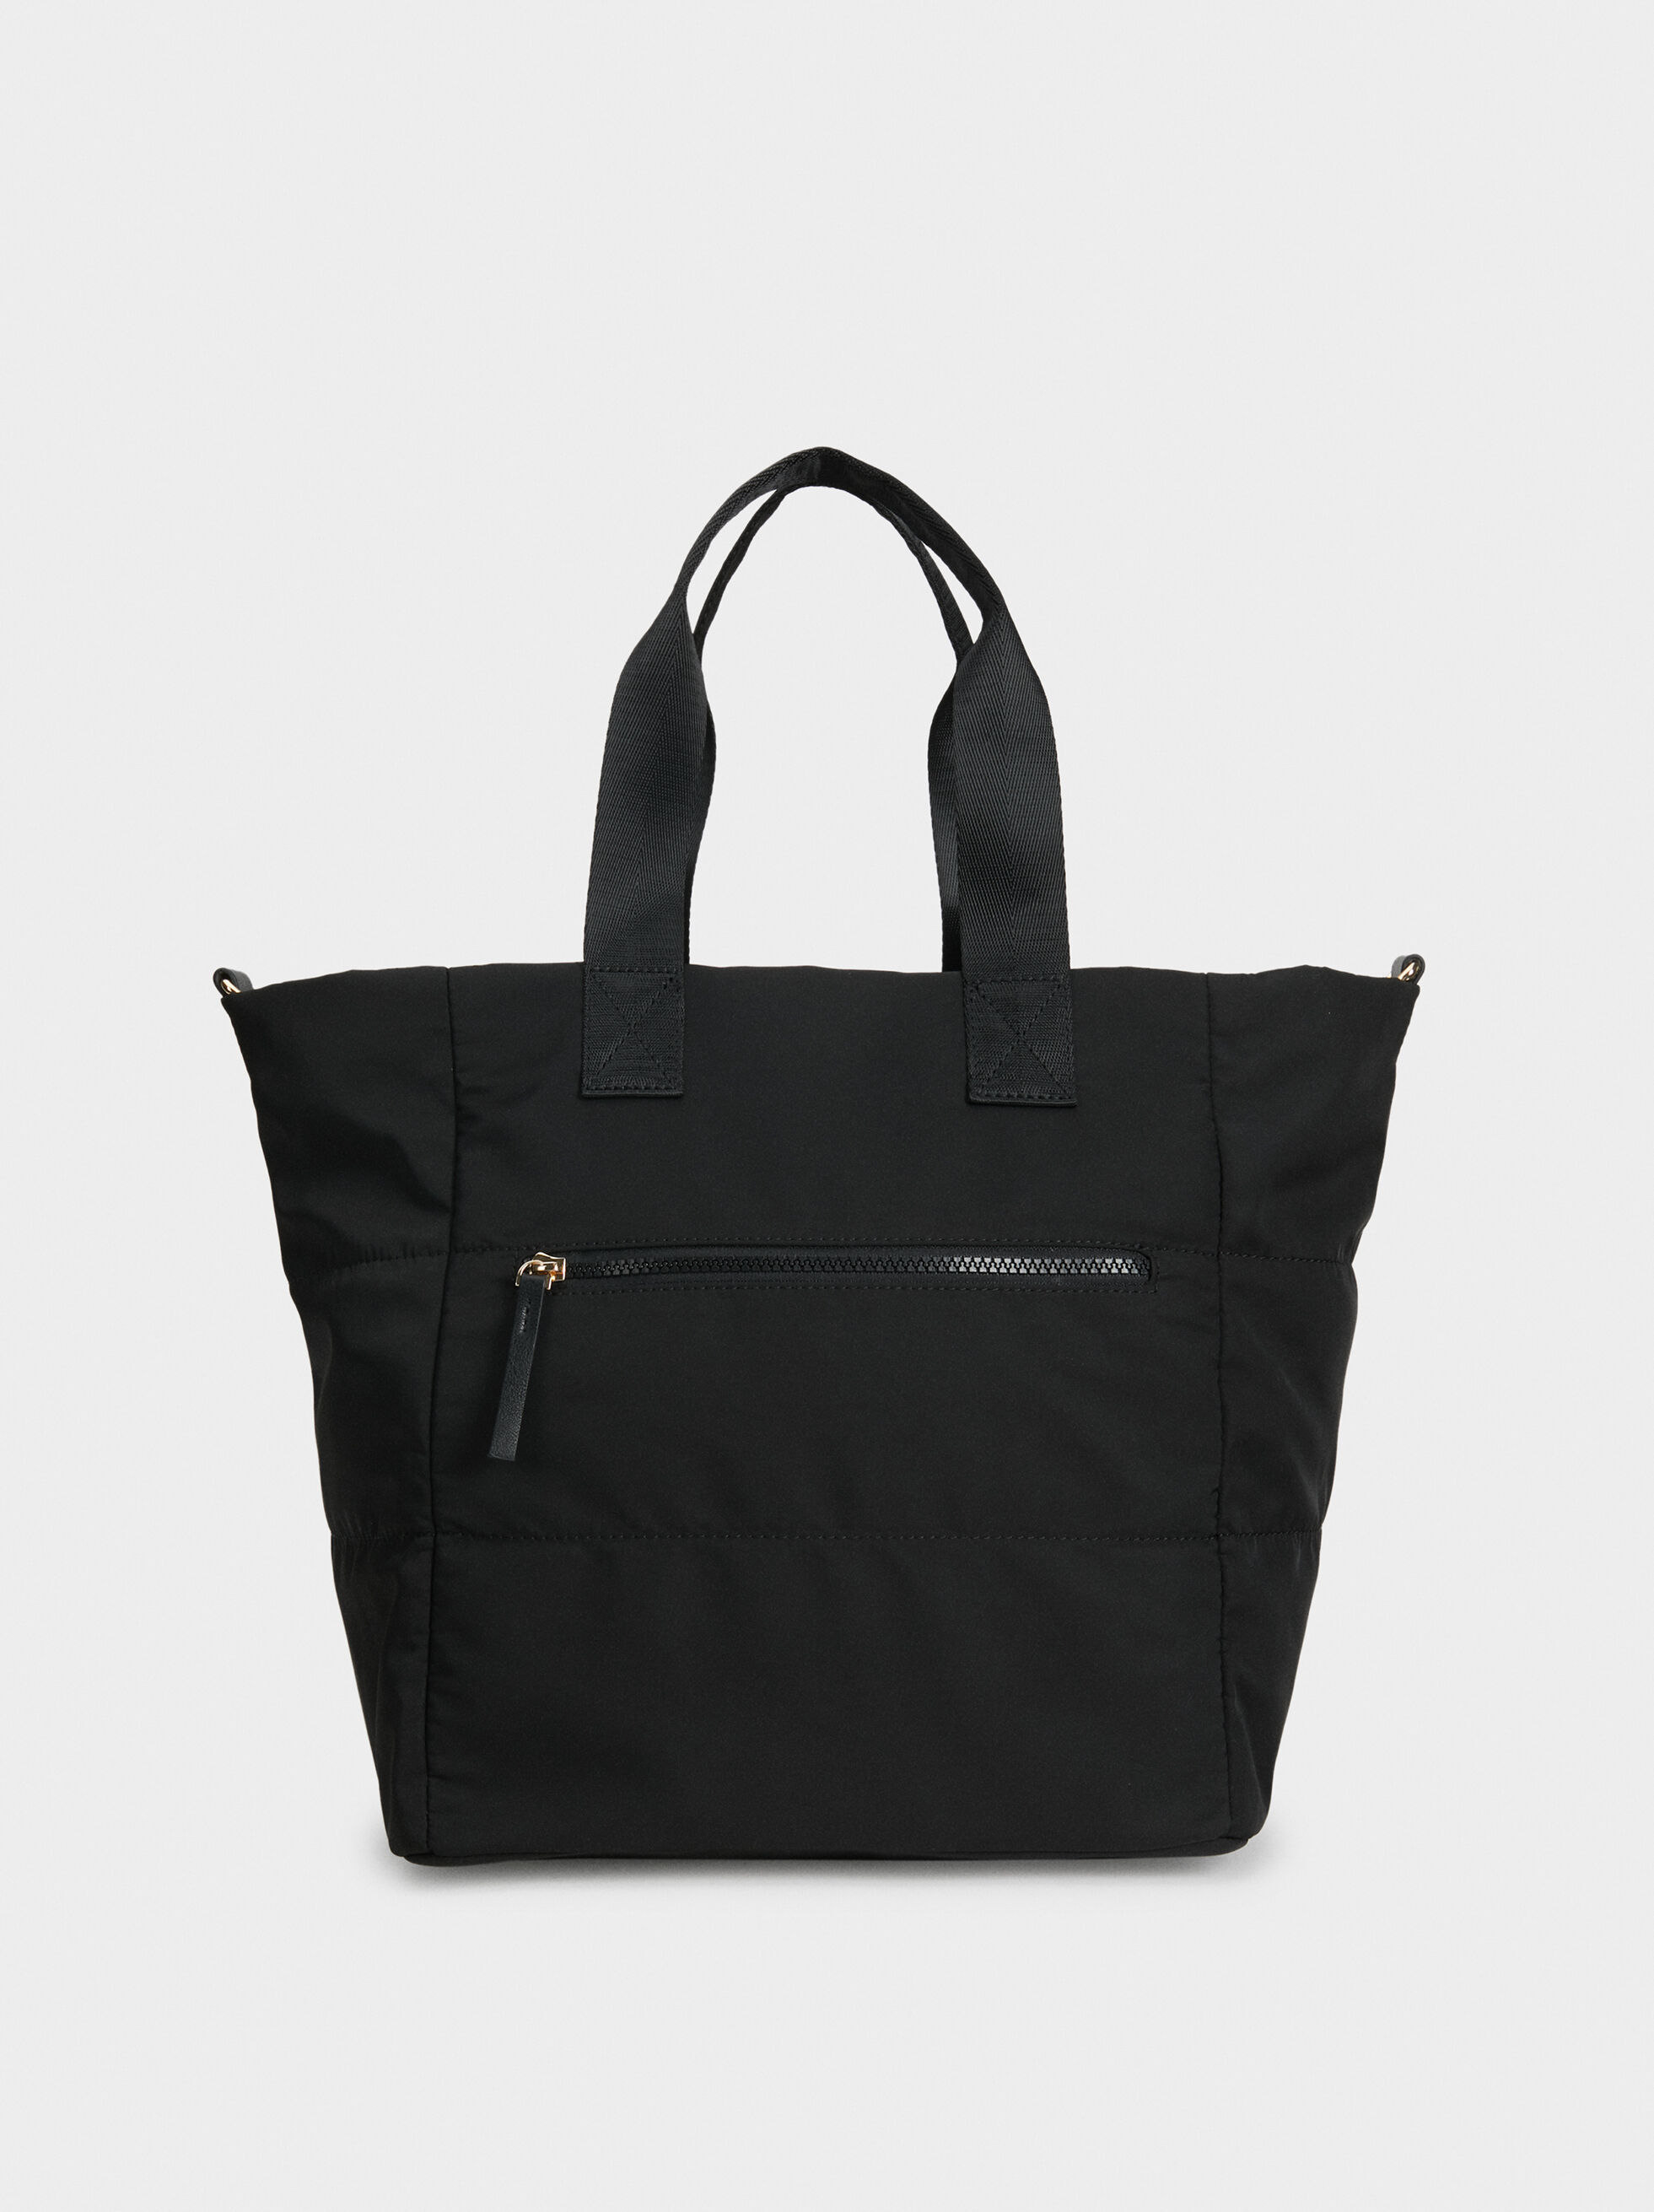 Nylon Tote Bag, Black, hi-res